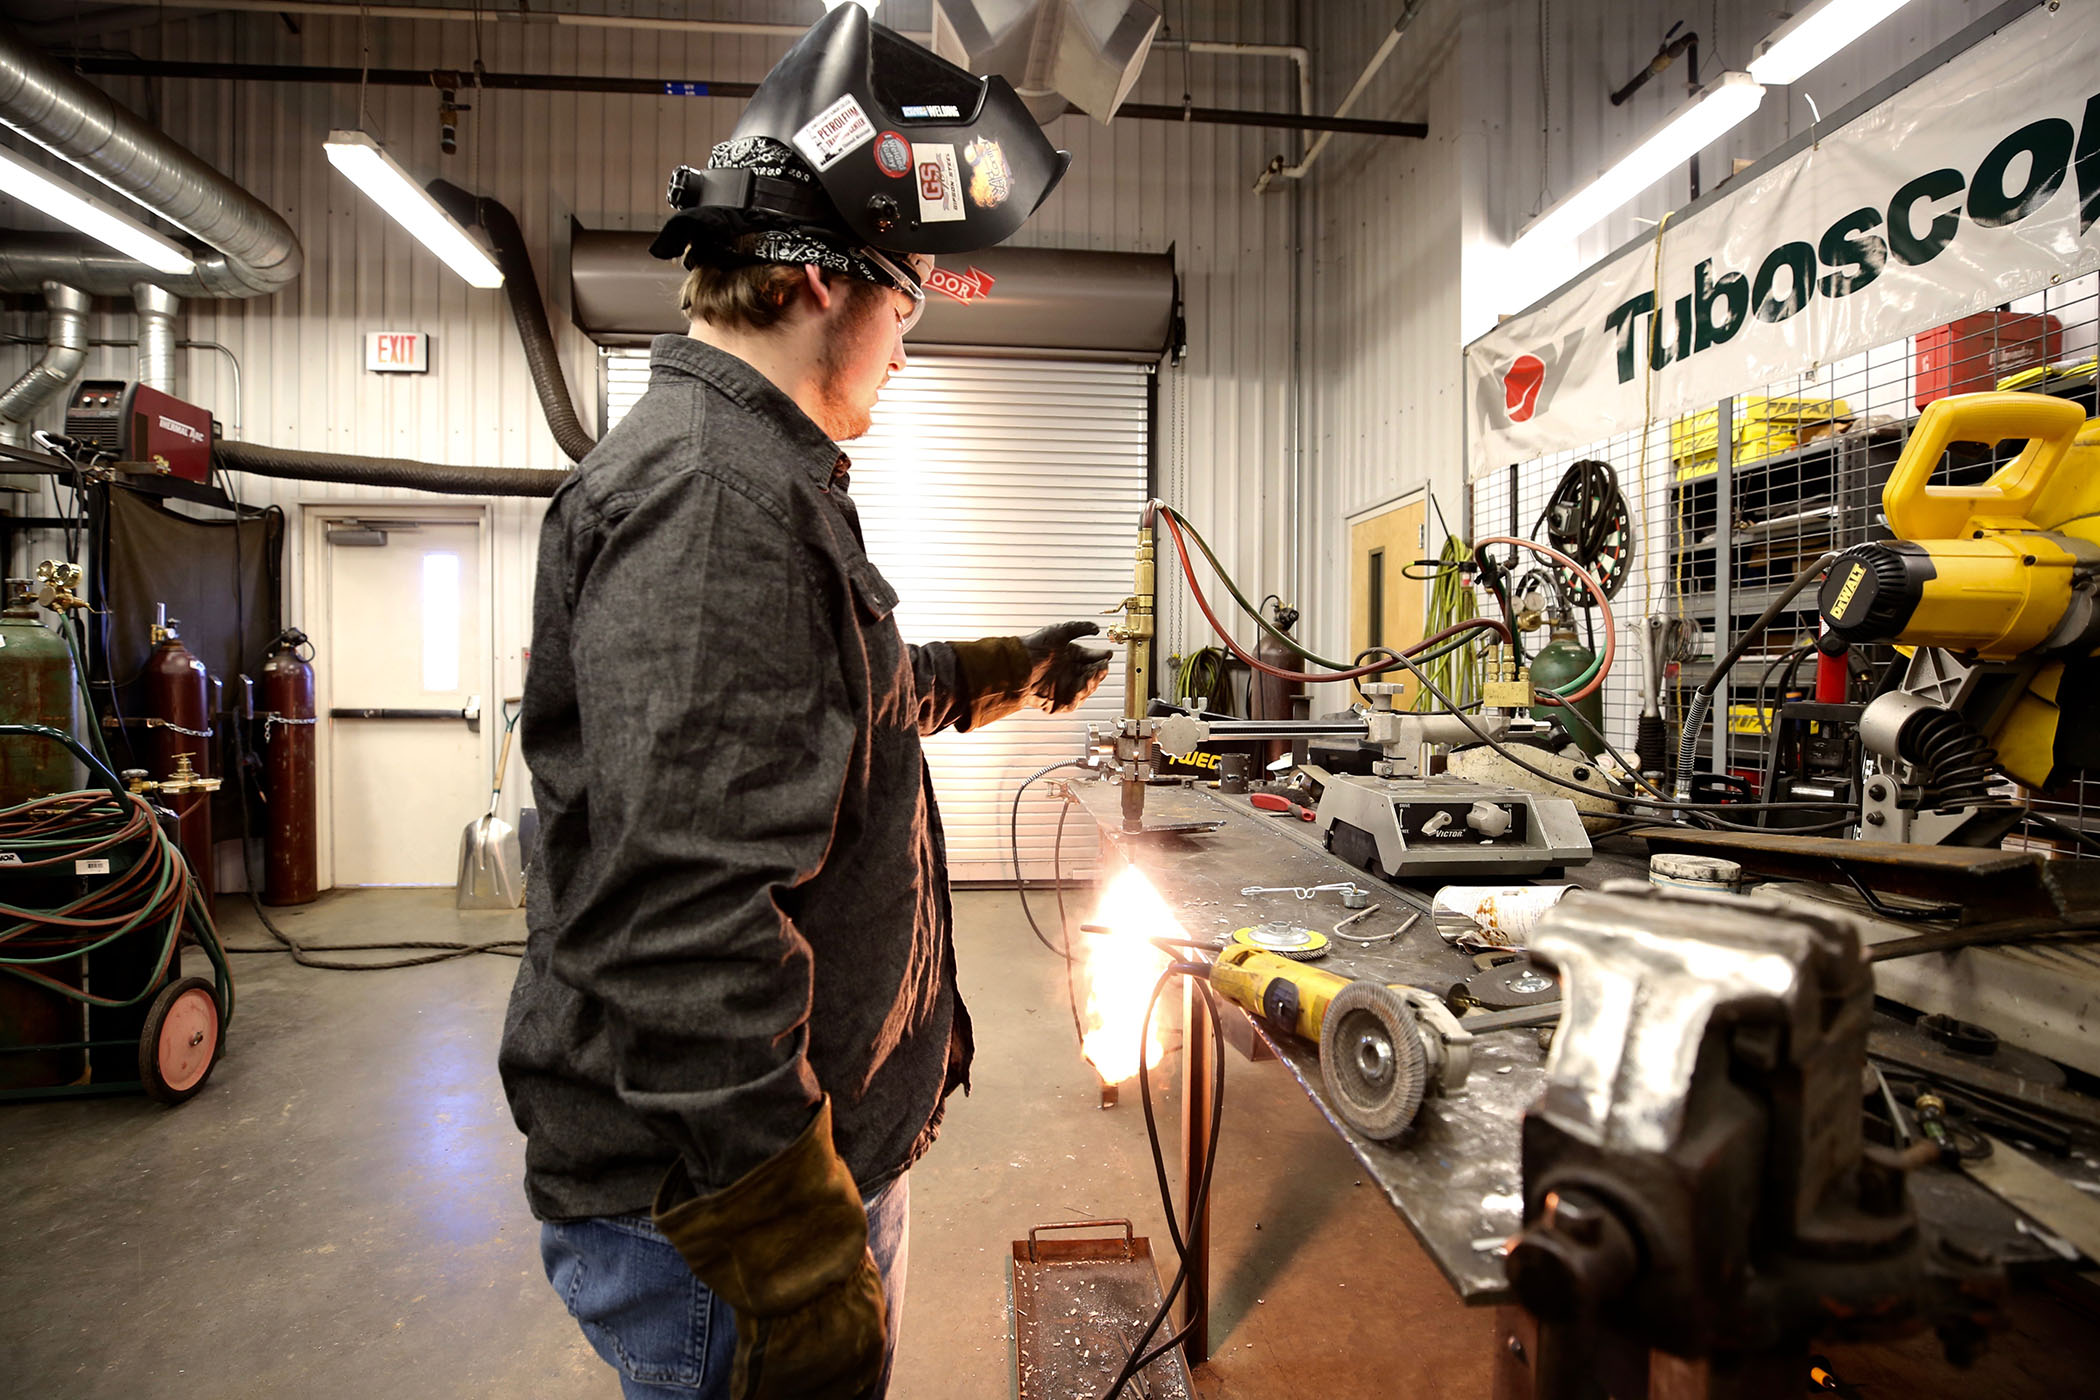 Jordan shows what he has learned in the welding center at the Stonewall, MS campus of JCJC.